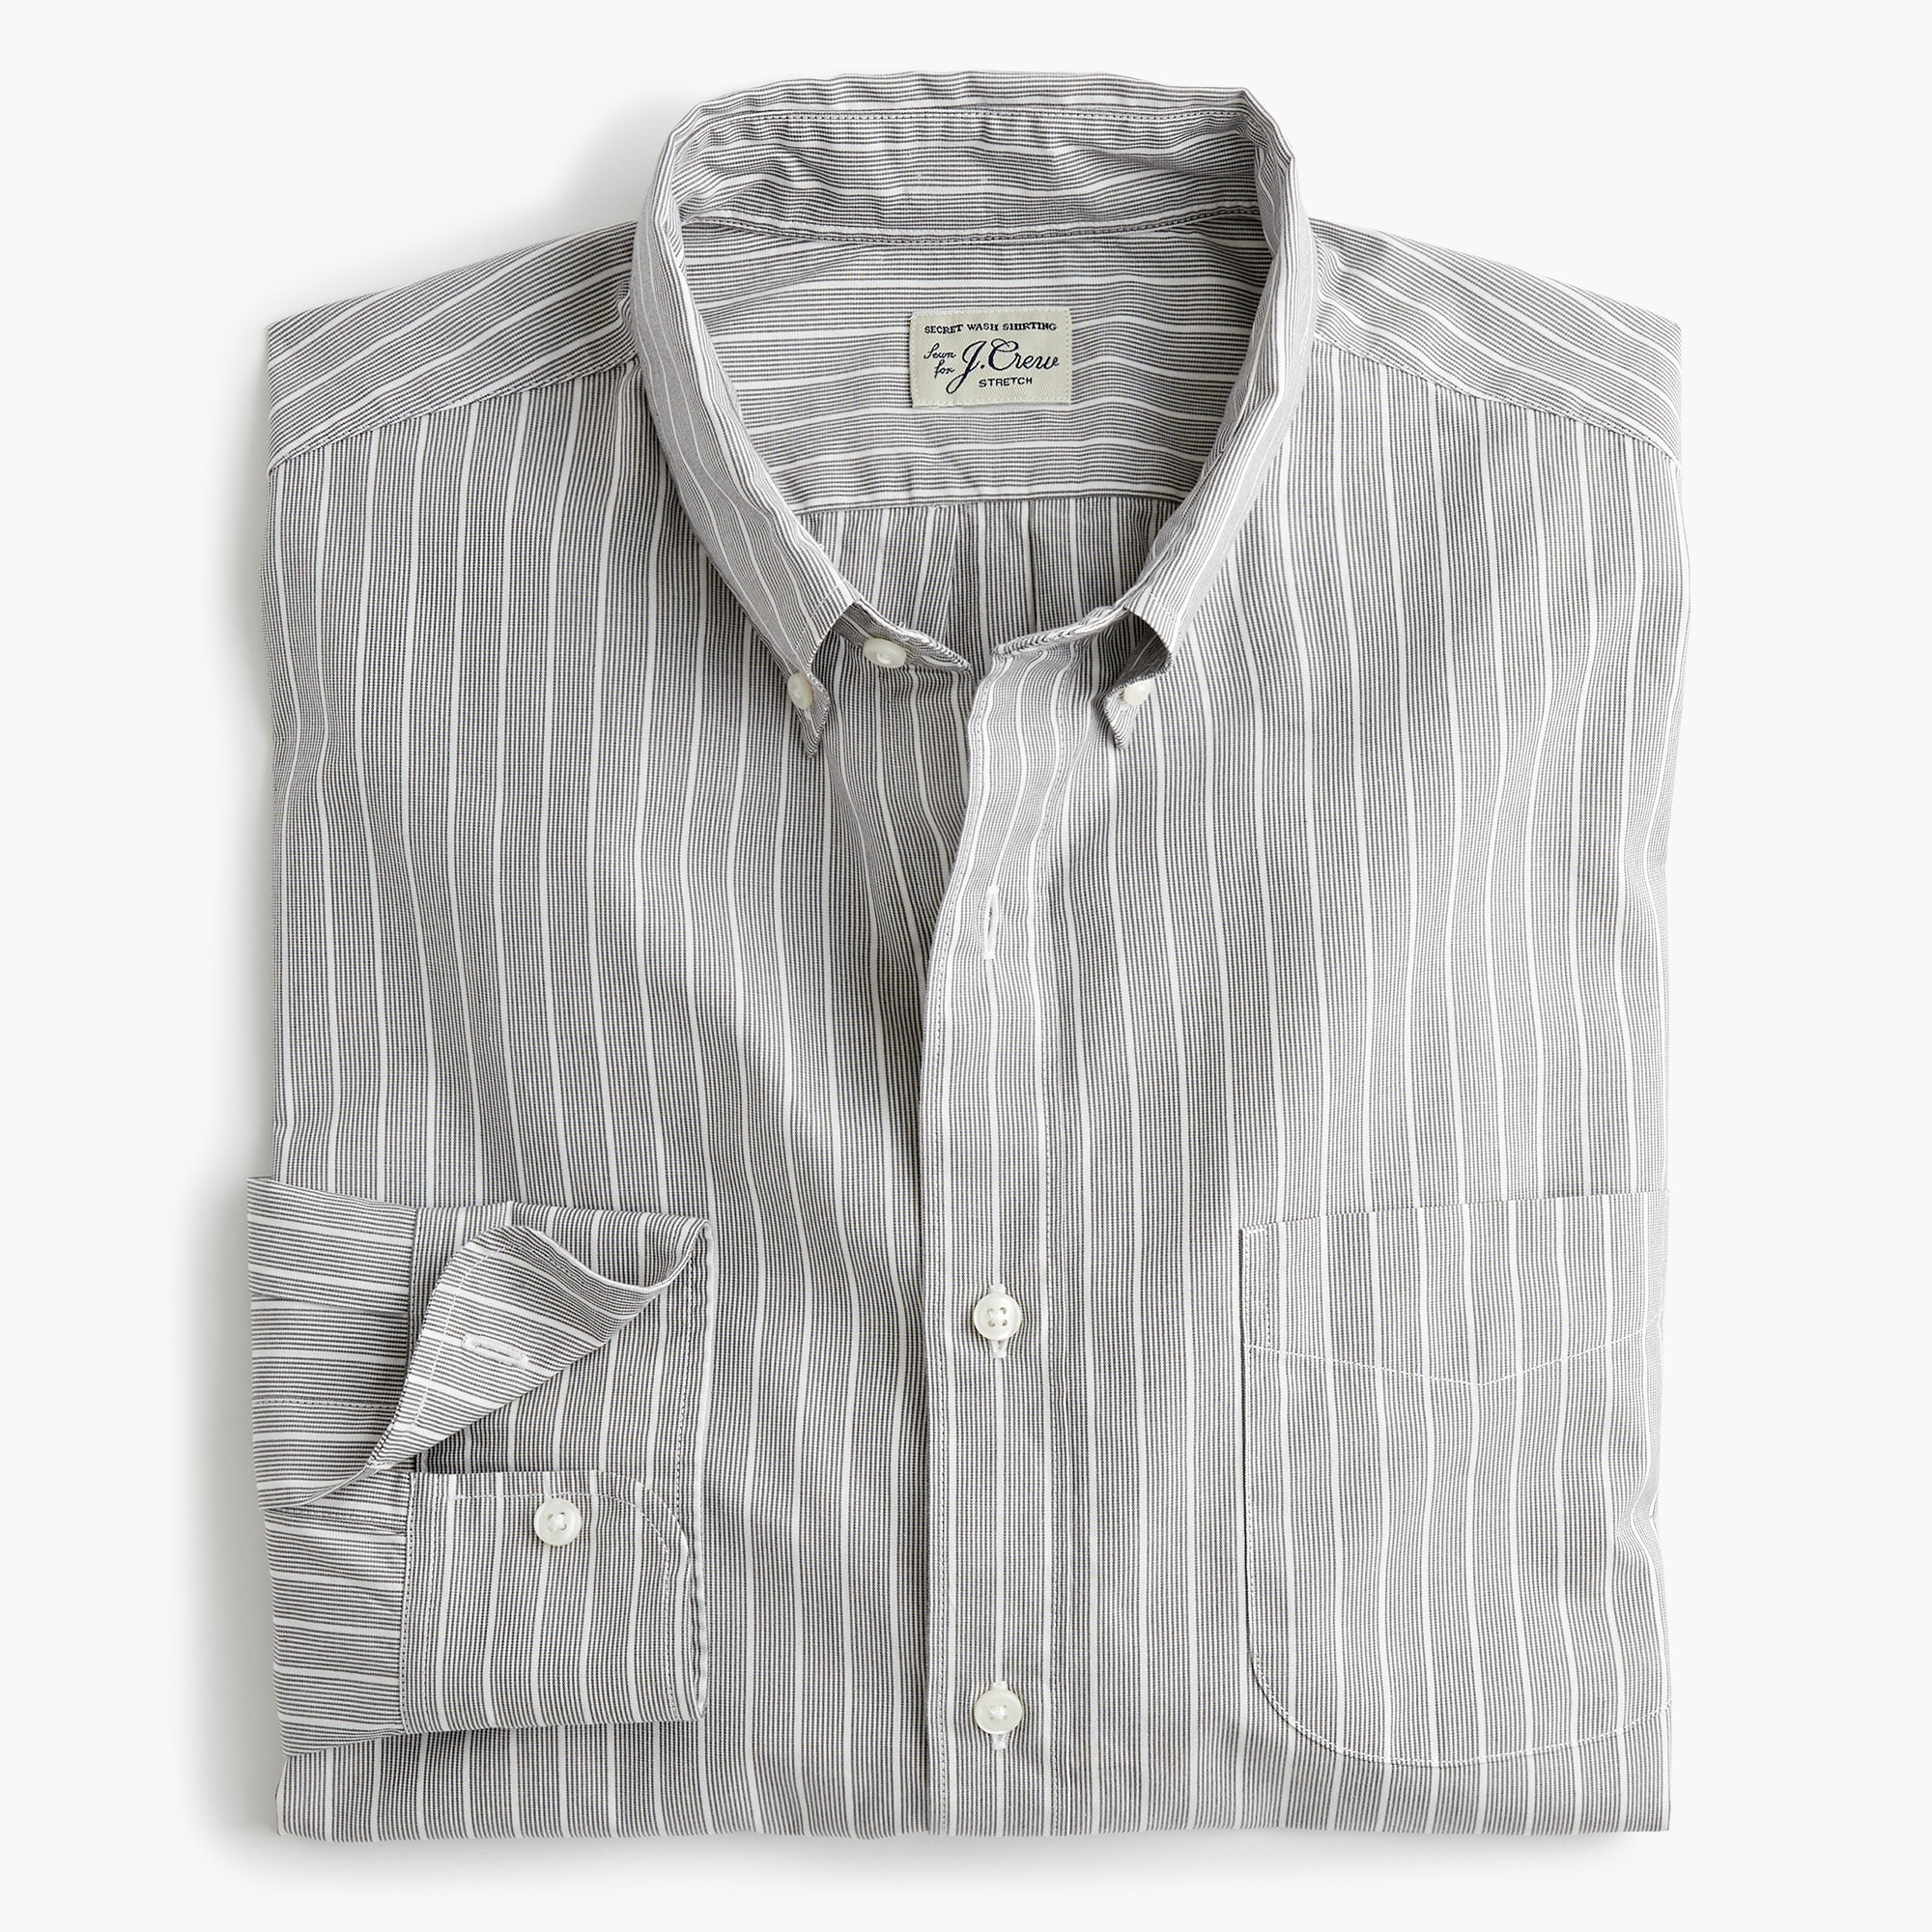 mens Slim stretch Secret Wash shirt in grey microstripe